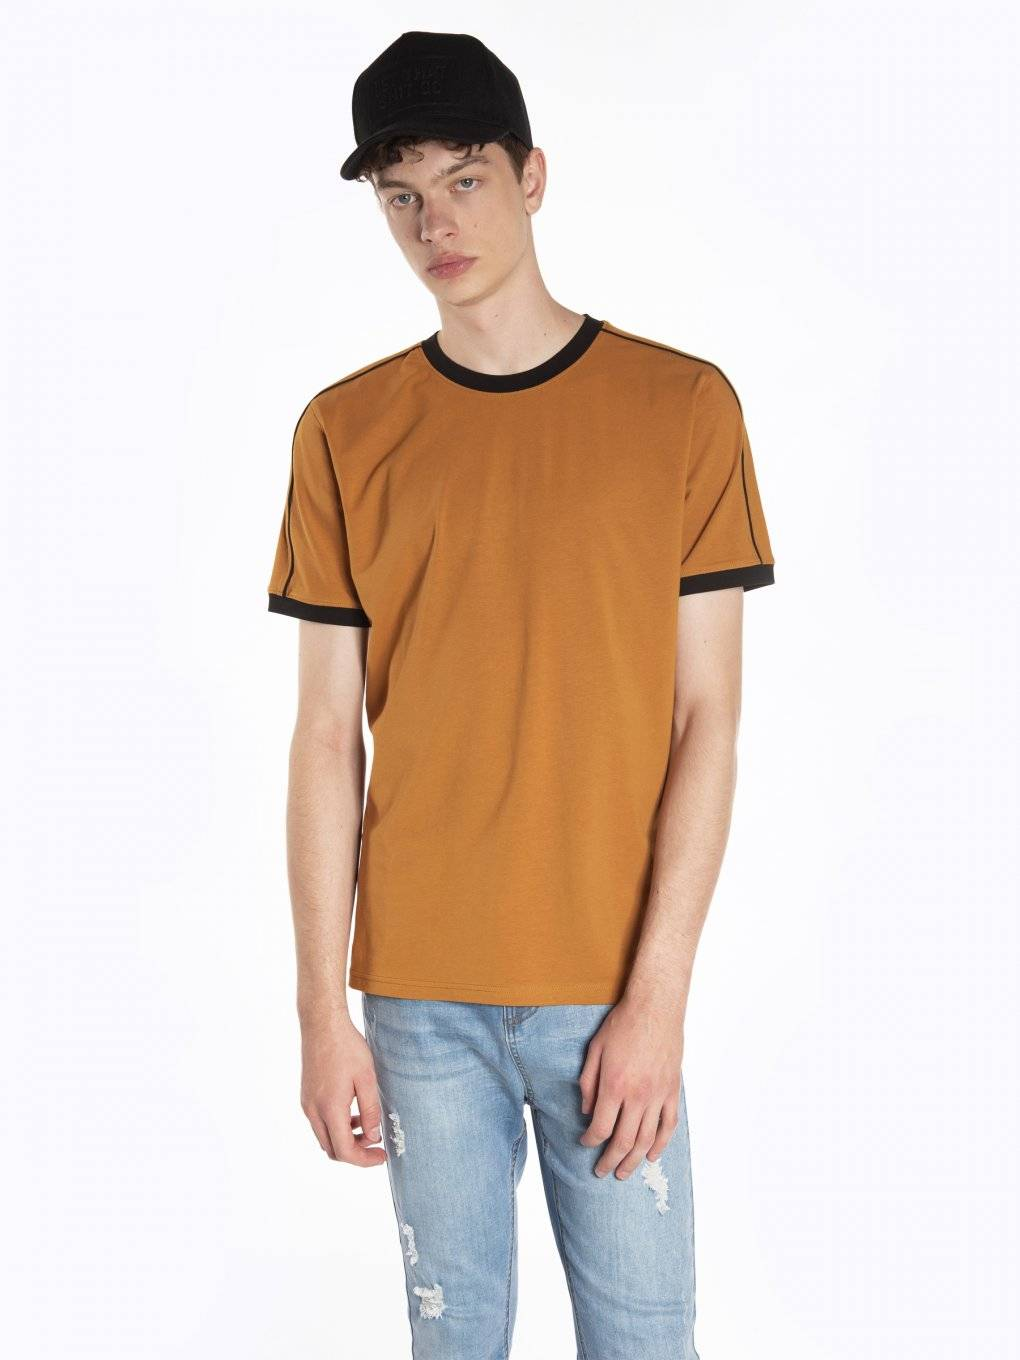 T-shirt with contrast trims